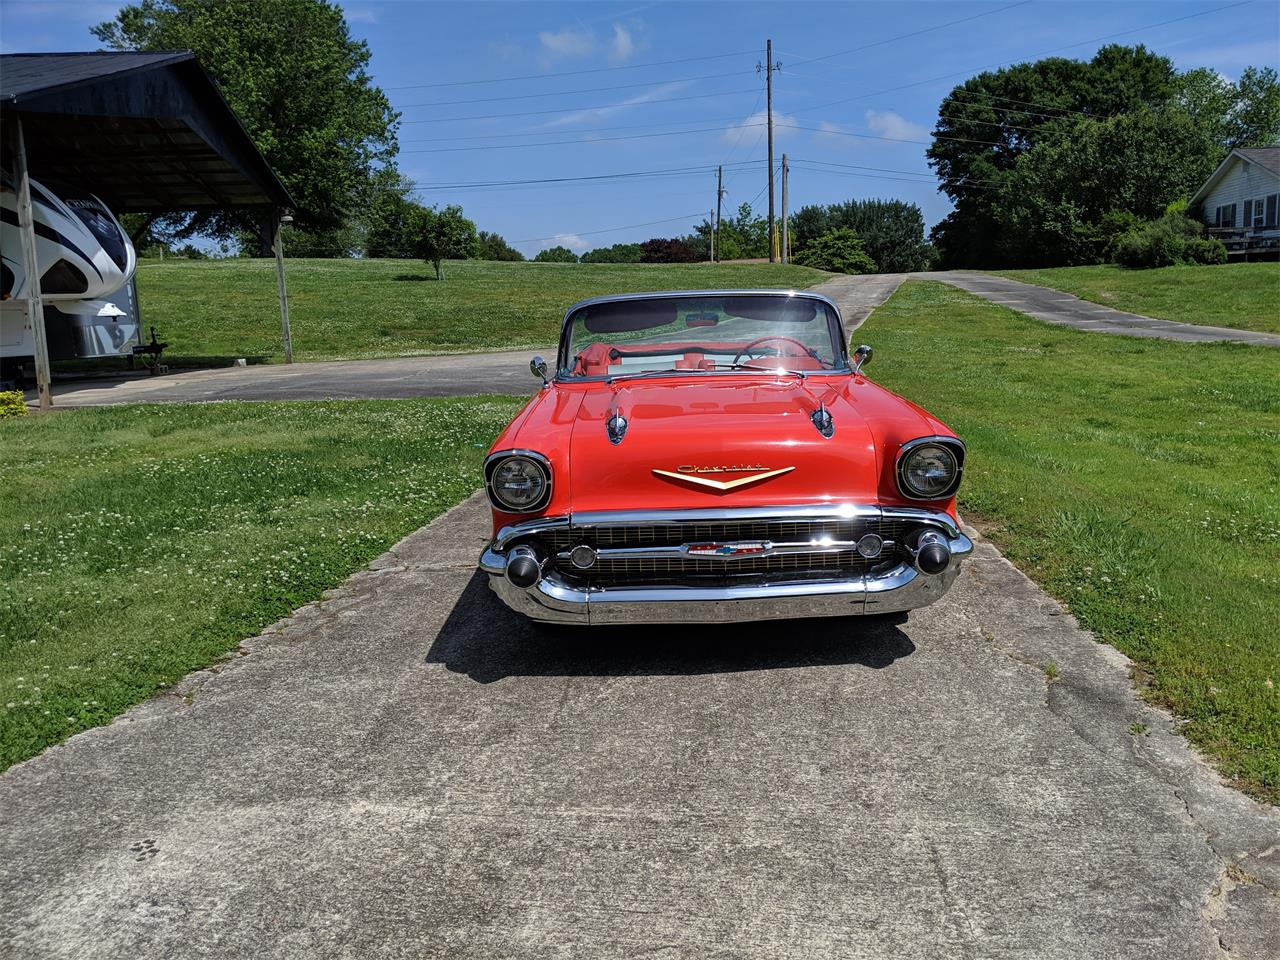 Large Picture of 1957 Bel Air located in Gainsville Georgia - $95,000.00 Offered by a Private Seller - Q0ZG